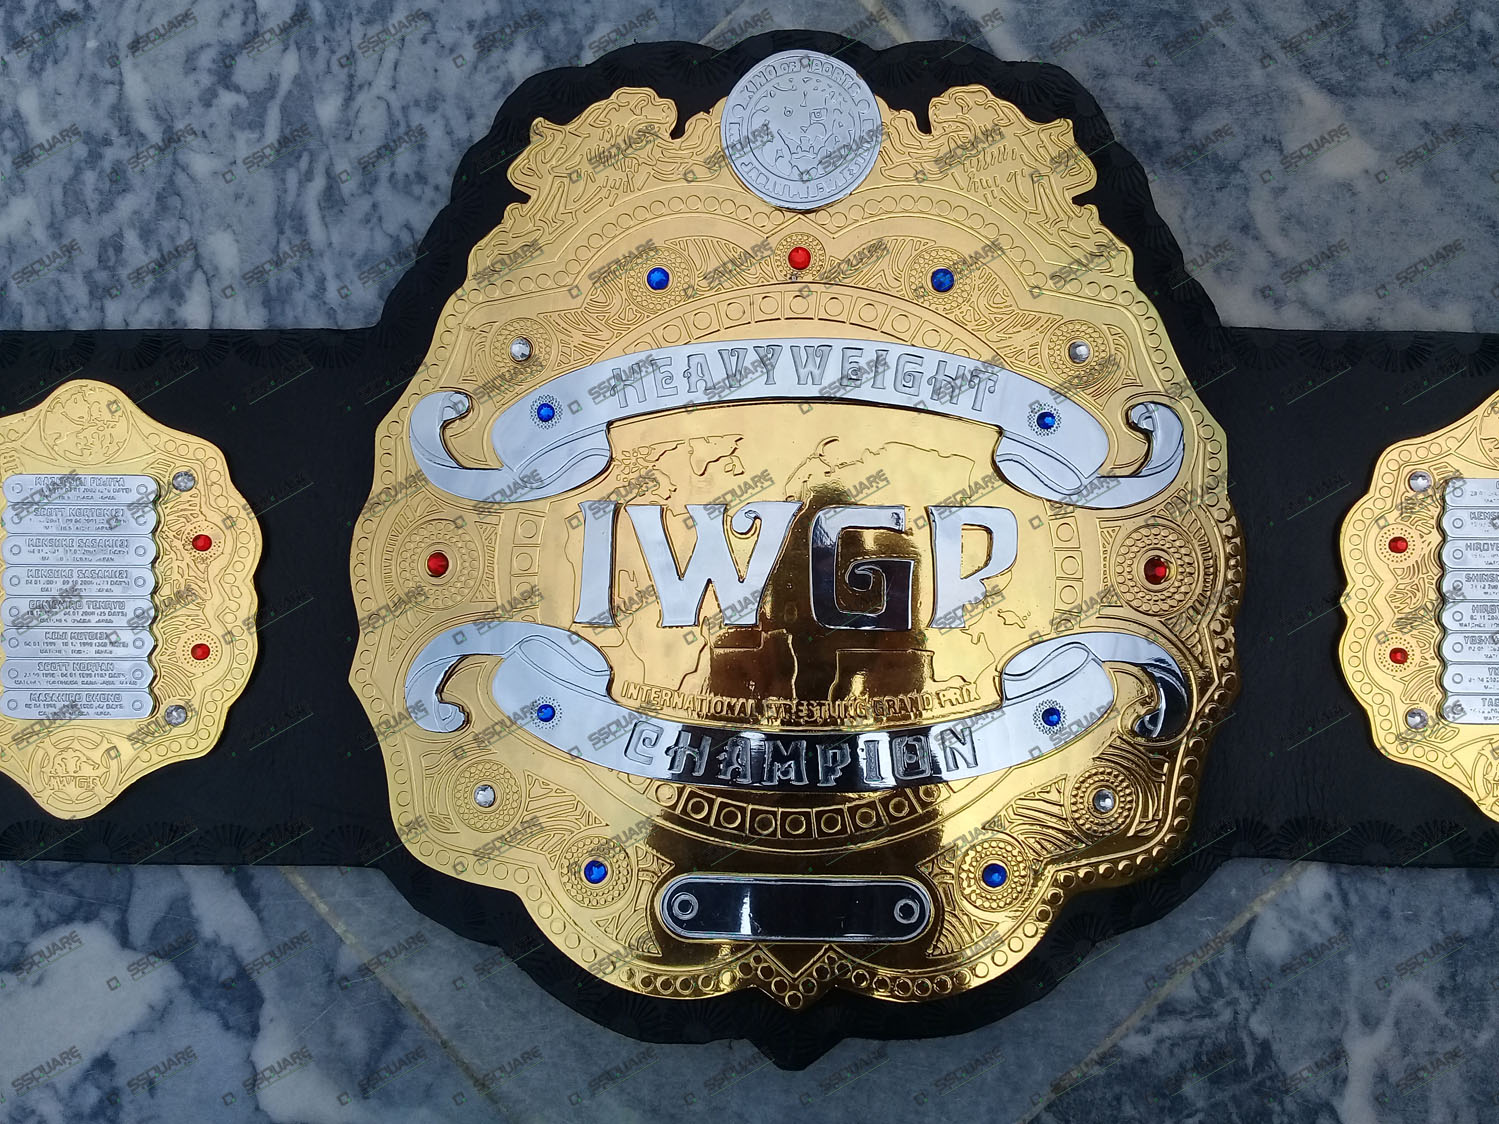 IWGP Heavyweight Wrestling Champion replica belt